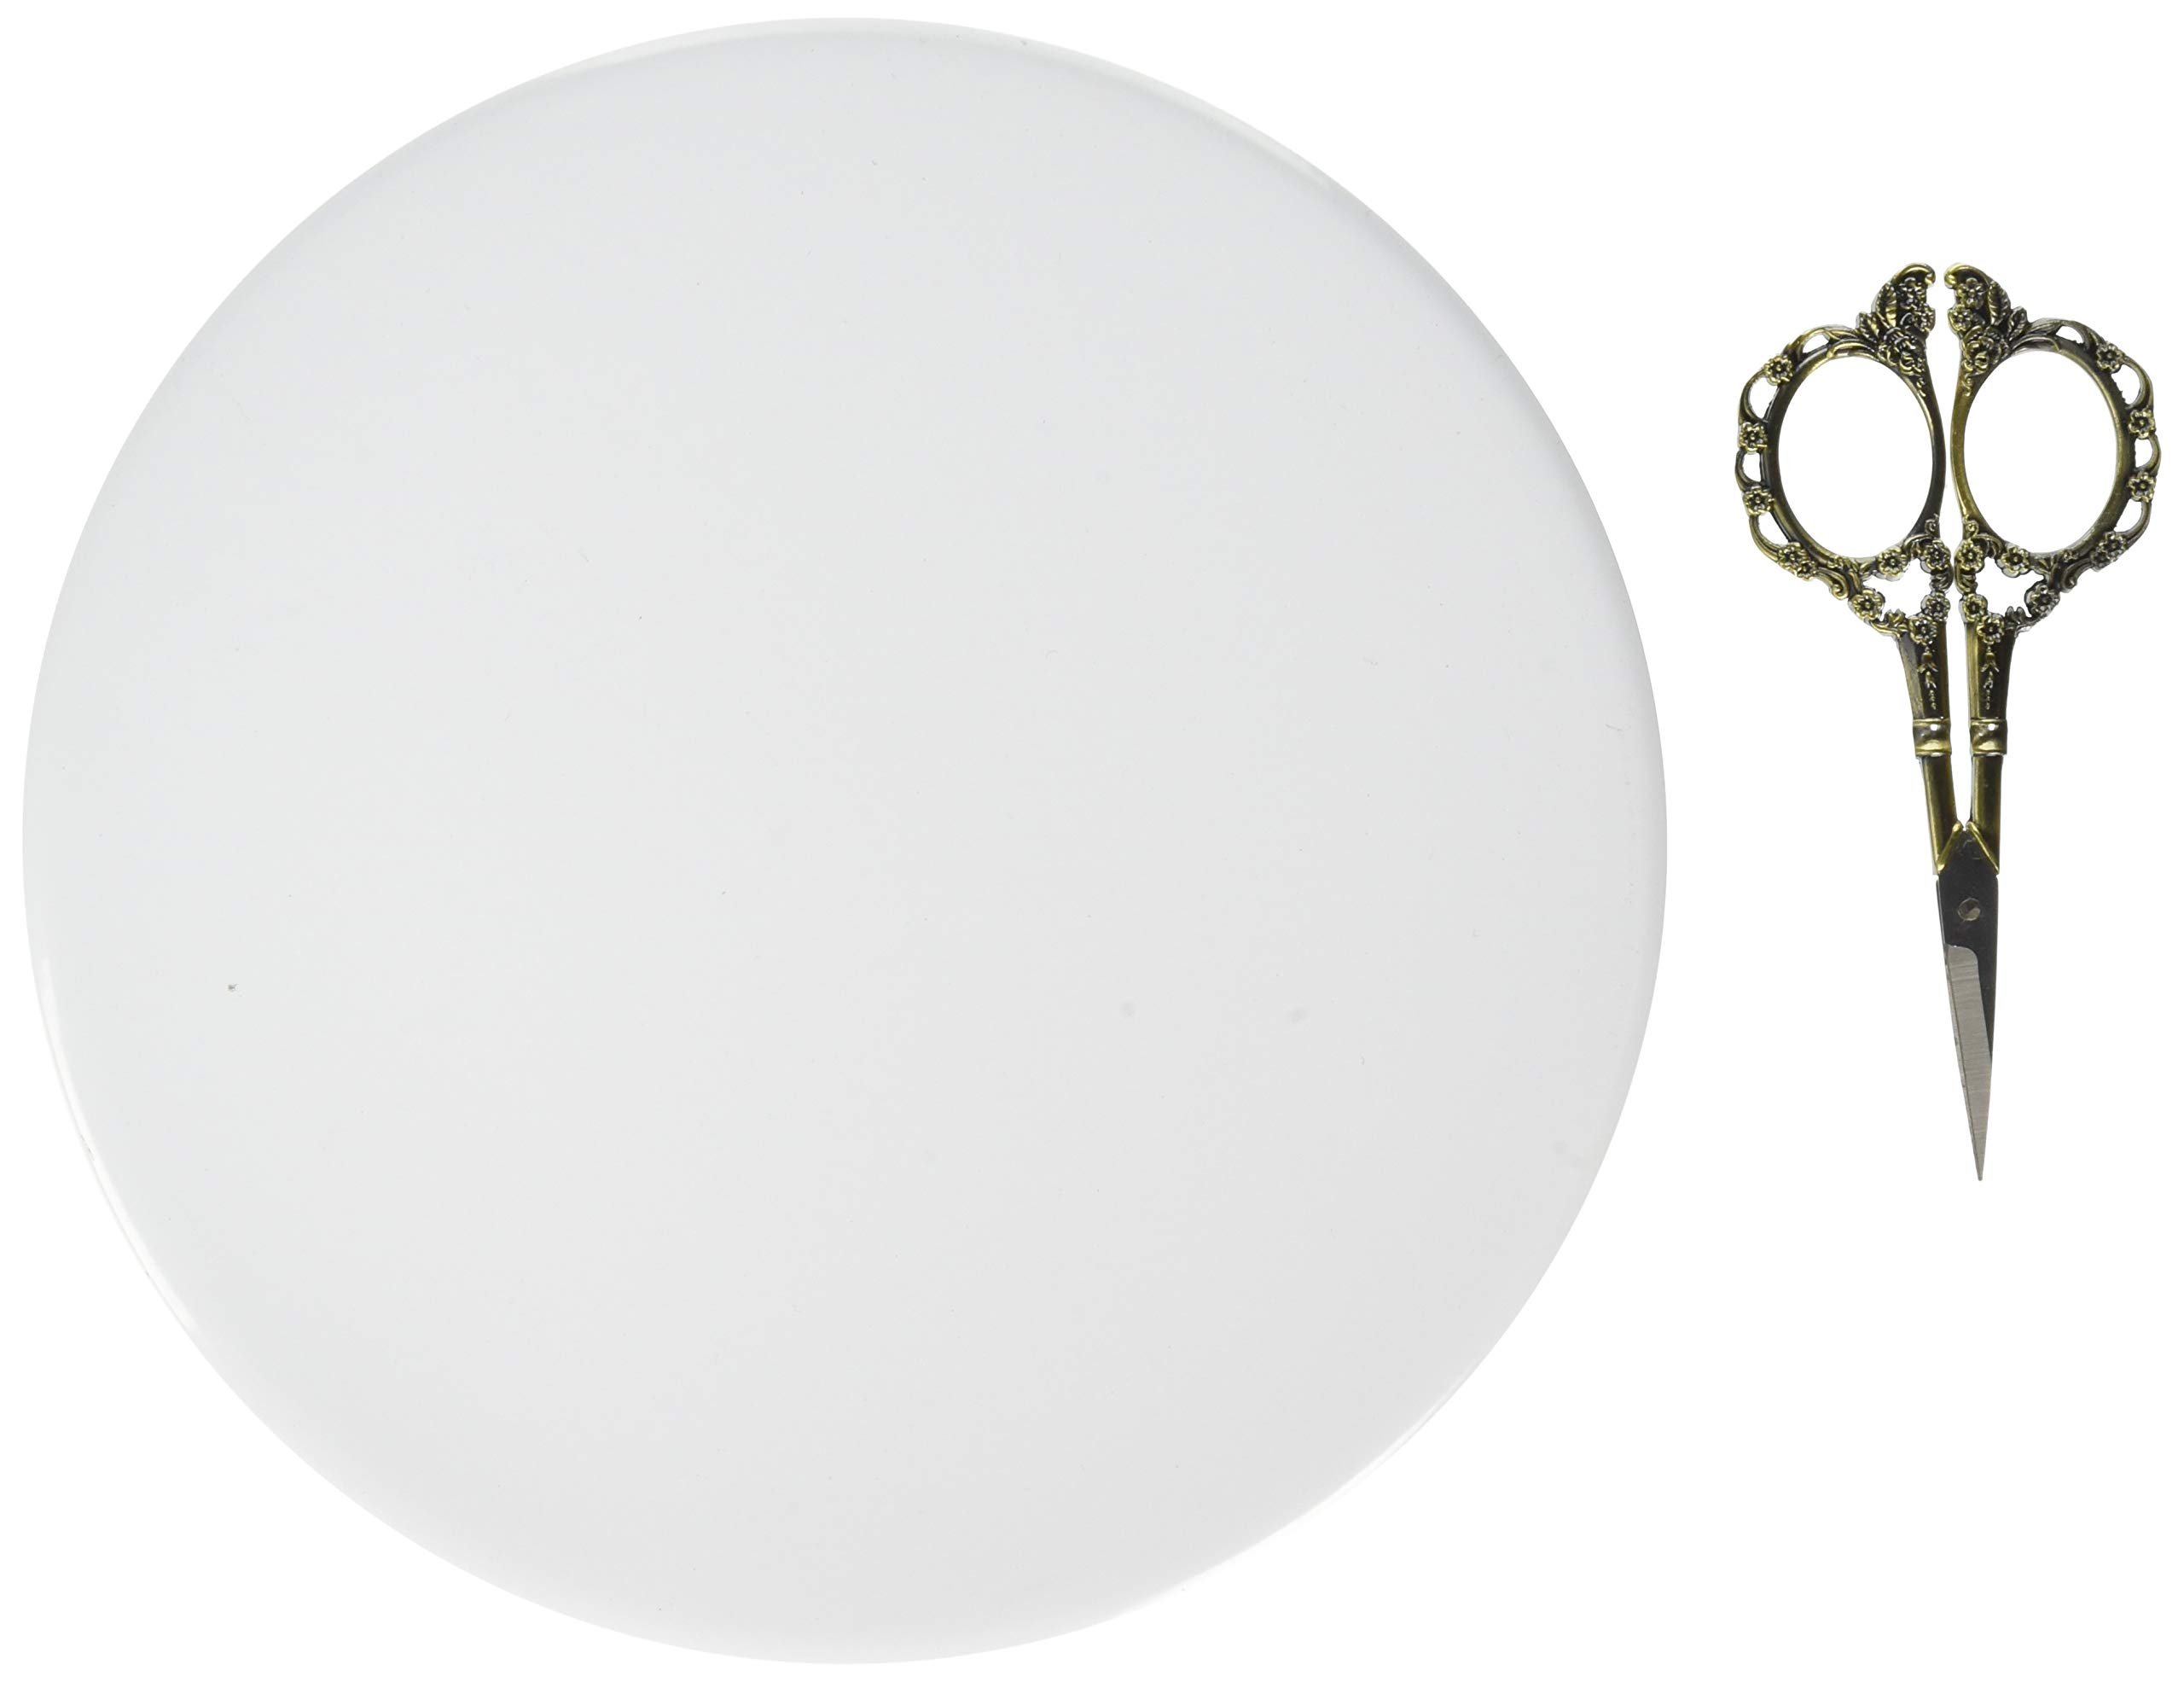 Garvin CBC-800 Recessed Blank-Up Cover Plate, 8-Inch Diameter, Steel, White